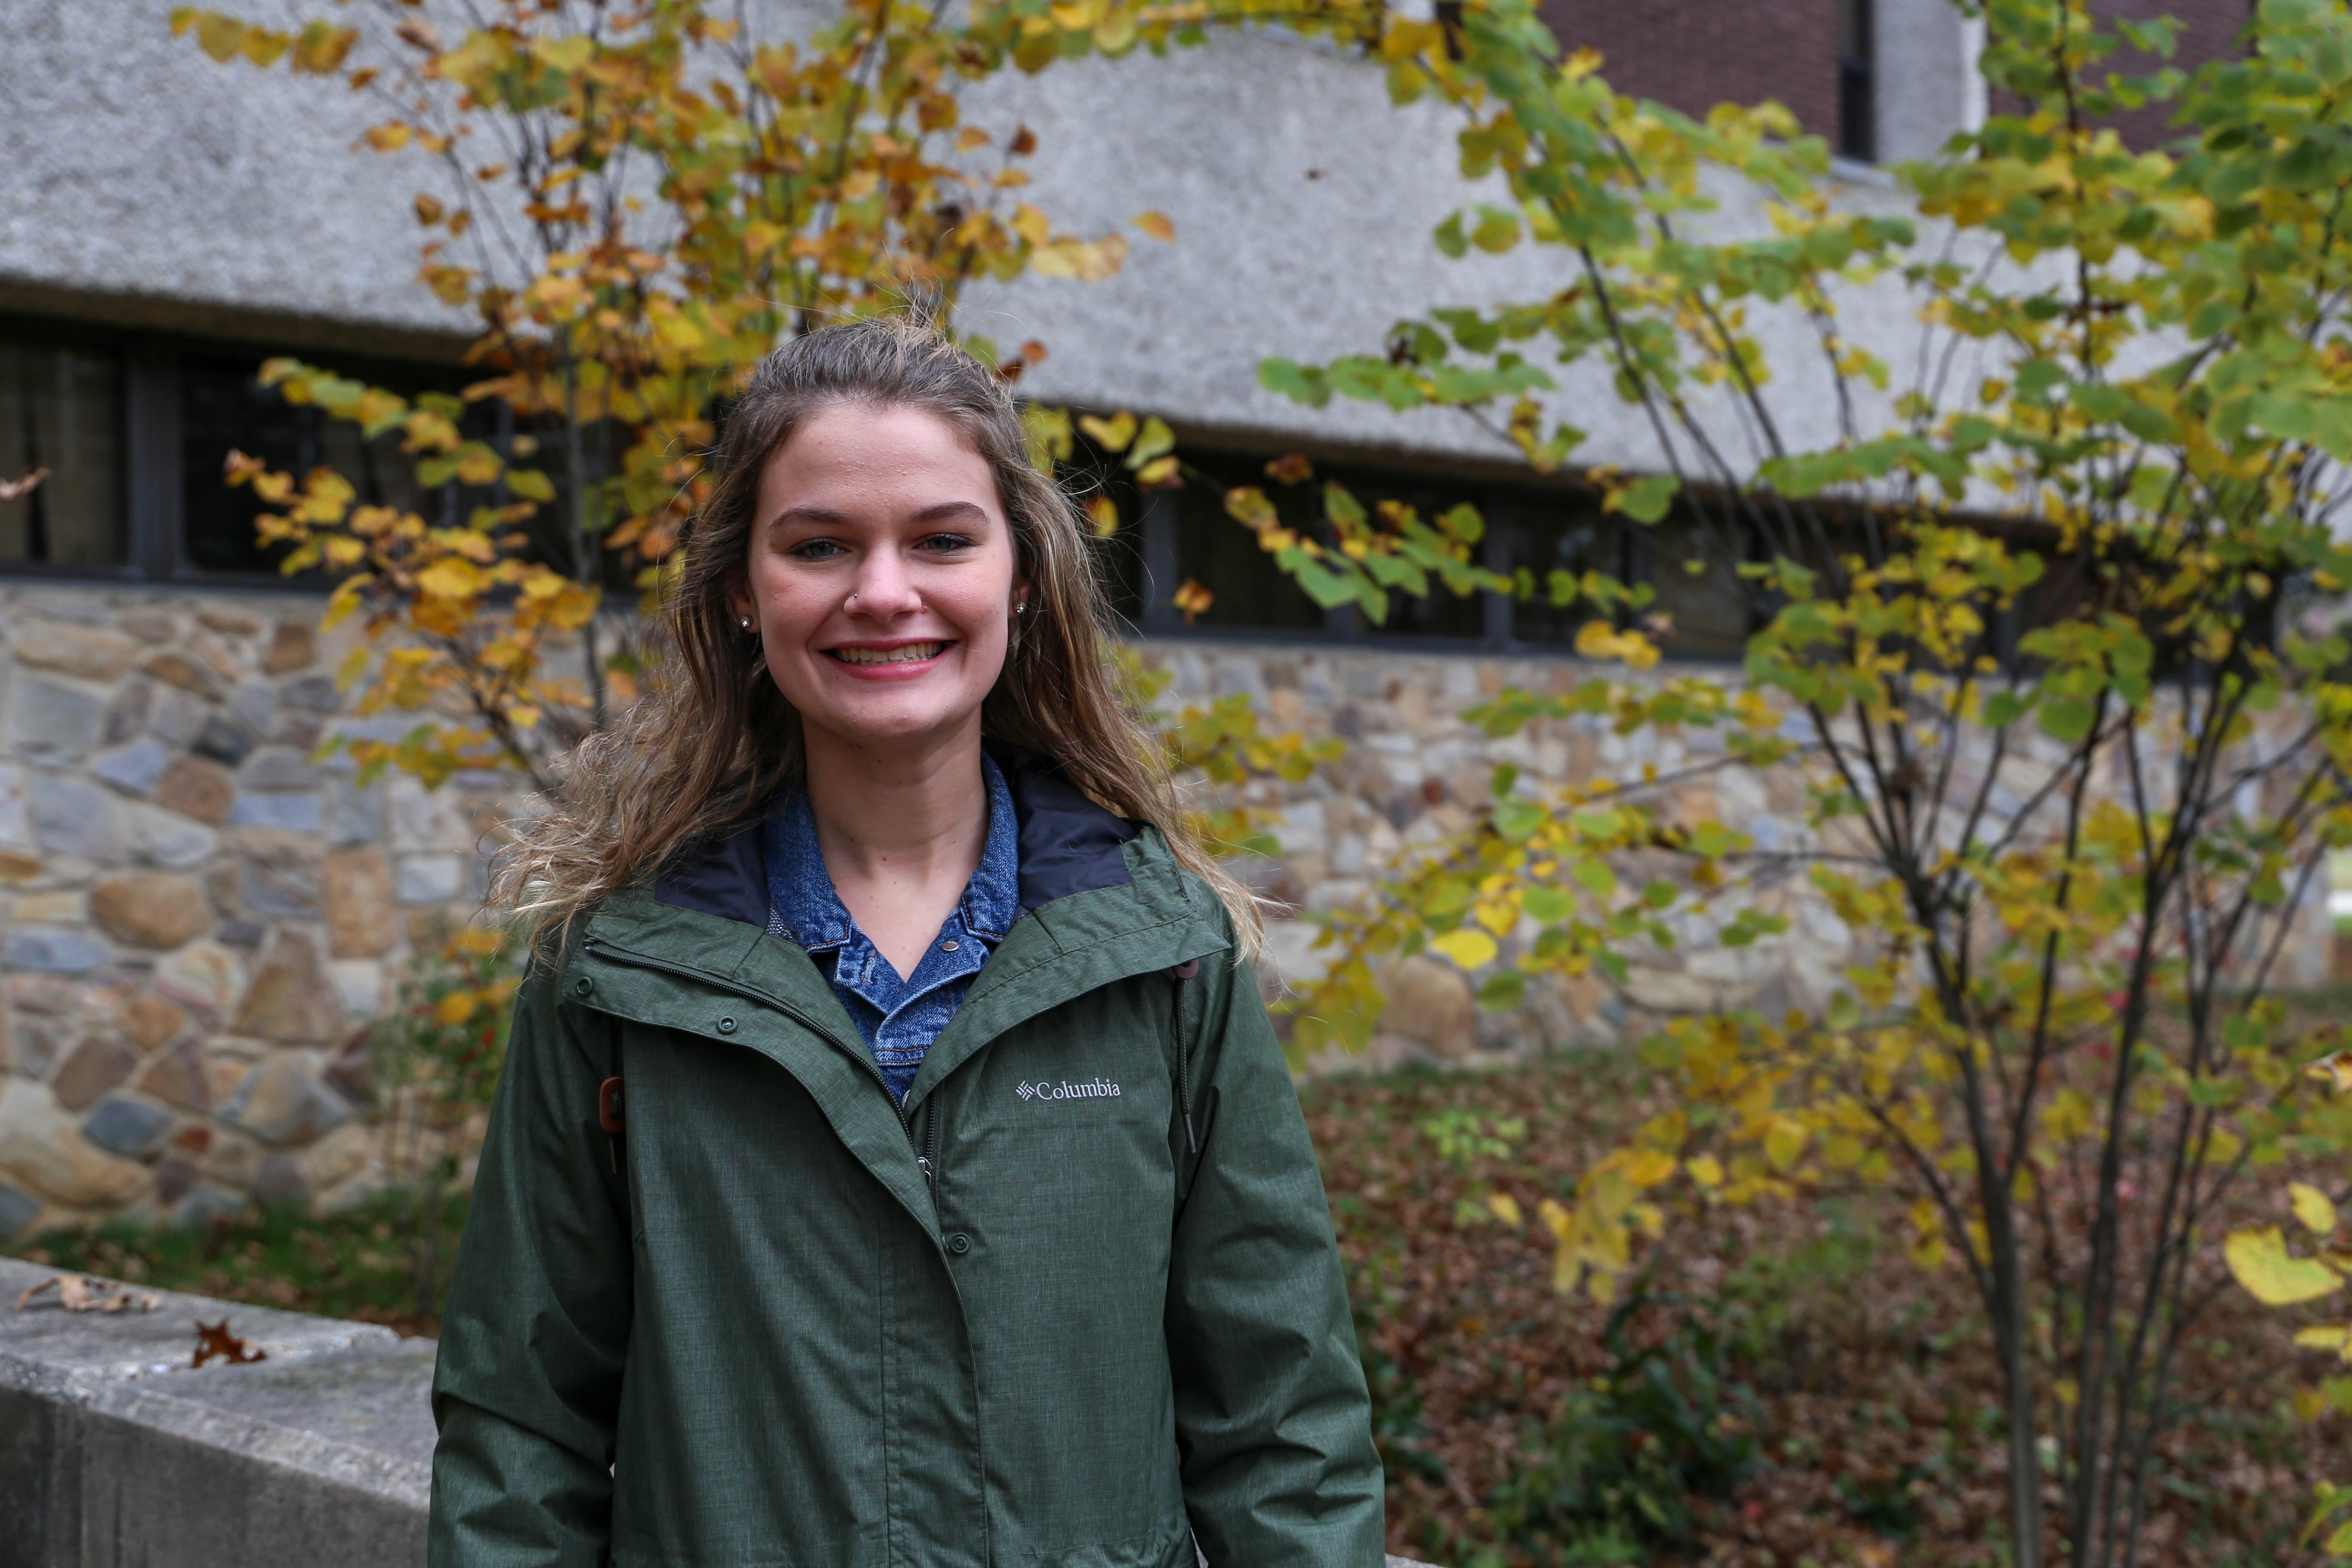 Transfer Student Sarah Burdhimo smiles outside of Robinson Hall, surrounded by fall foliage.